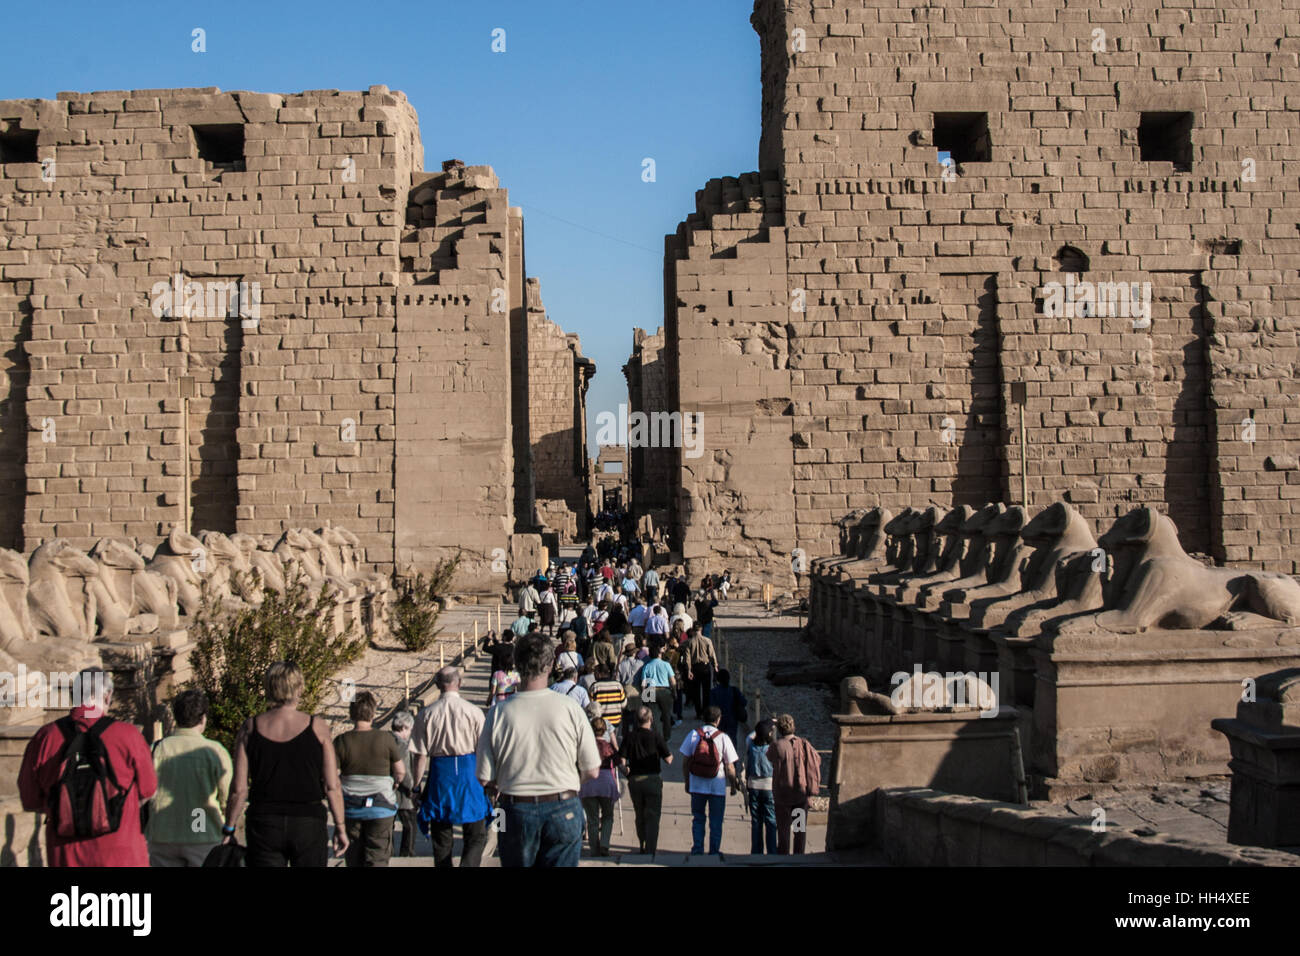 Crowds entering the Temple of karnak, Luxor, Egypt. It's one of the most popular sites in Egypt. - Stock Image